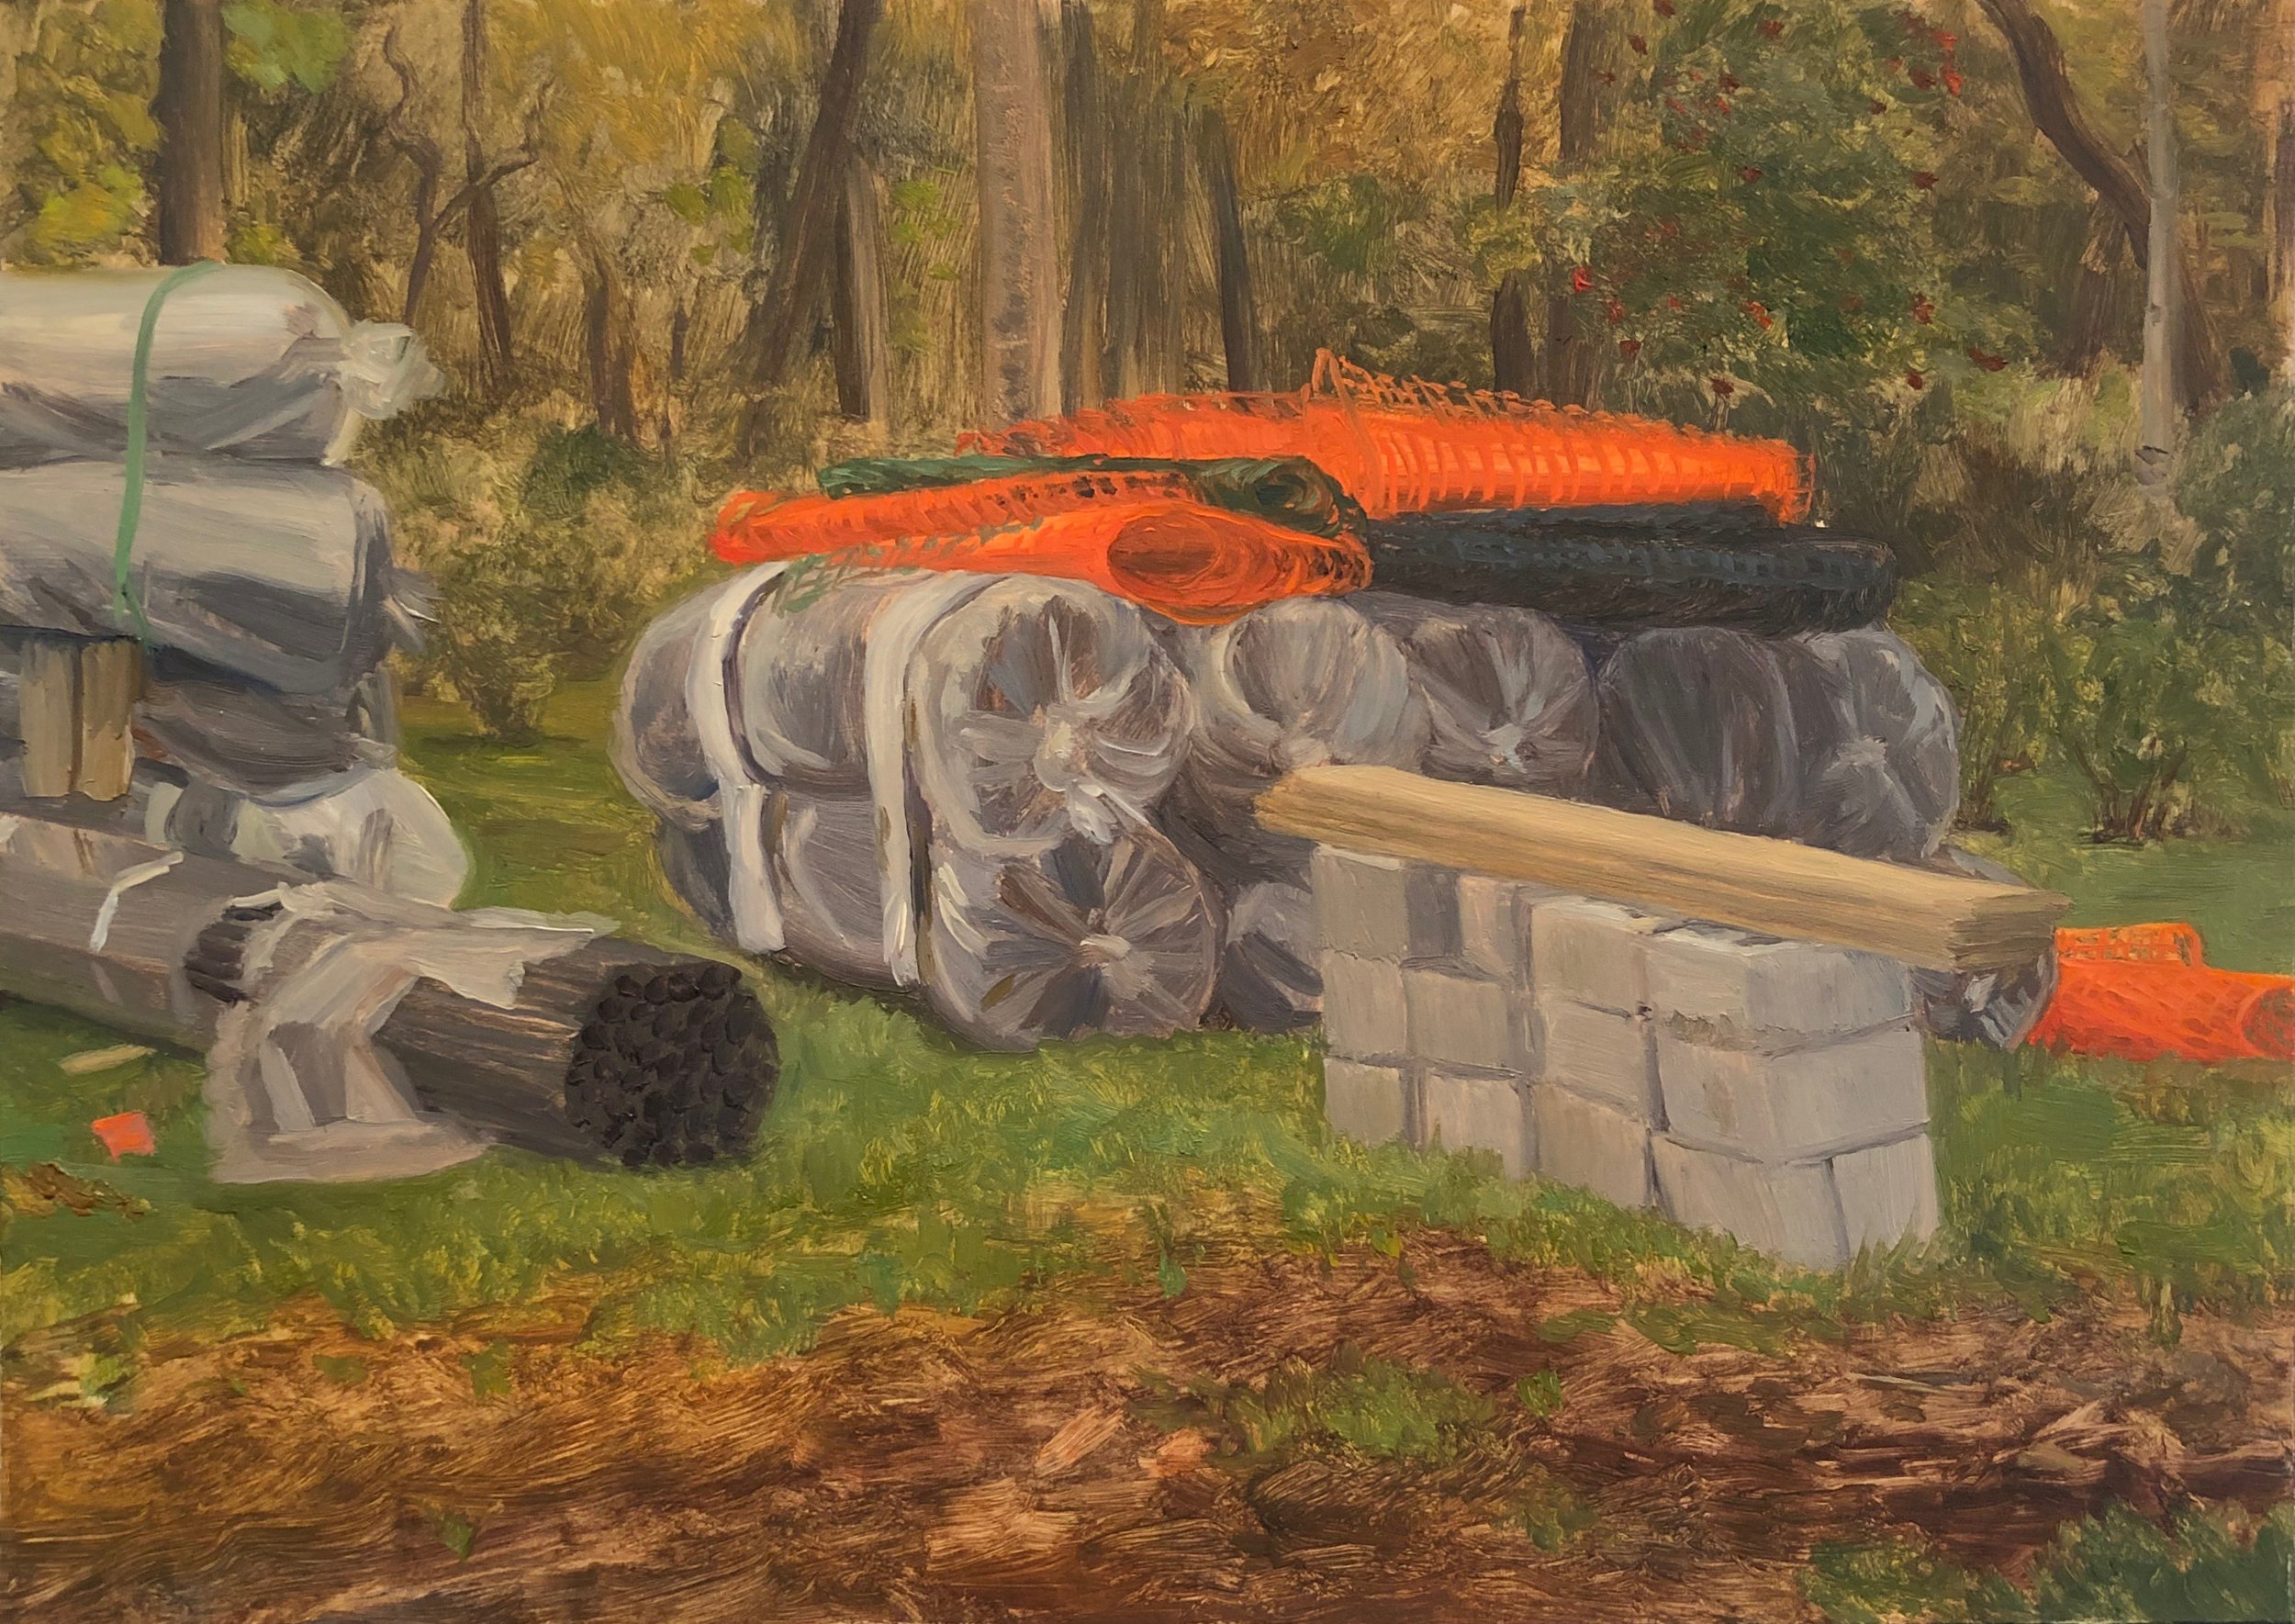 Fencing Supplies Oil on panel 5 by 7 inches September, 2018